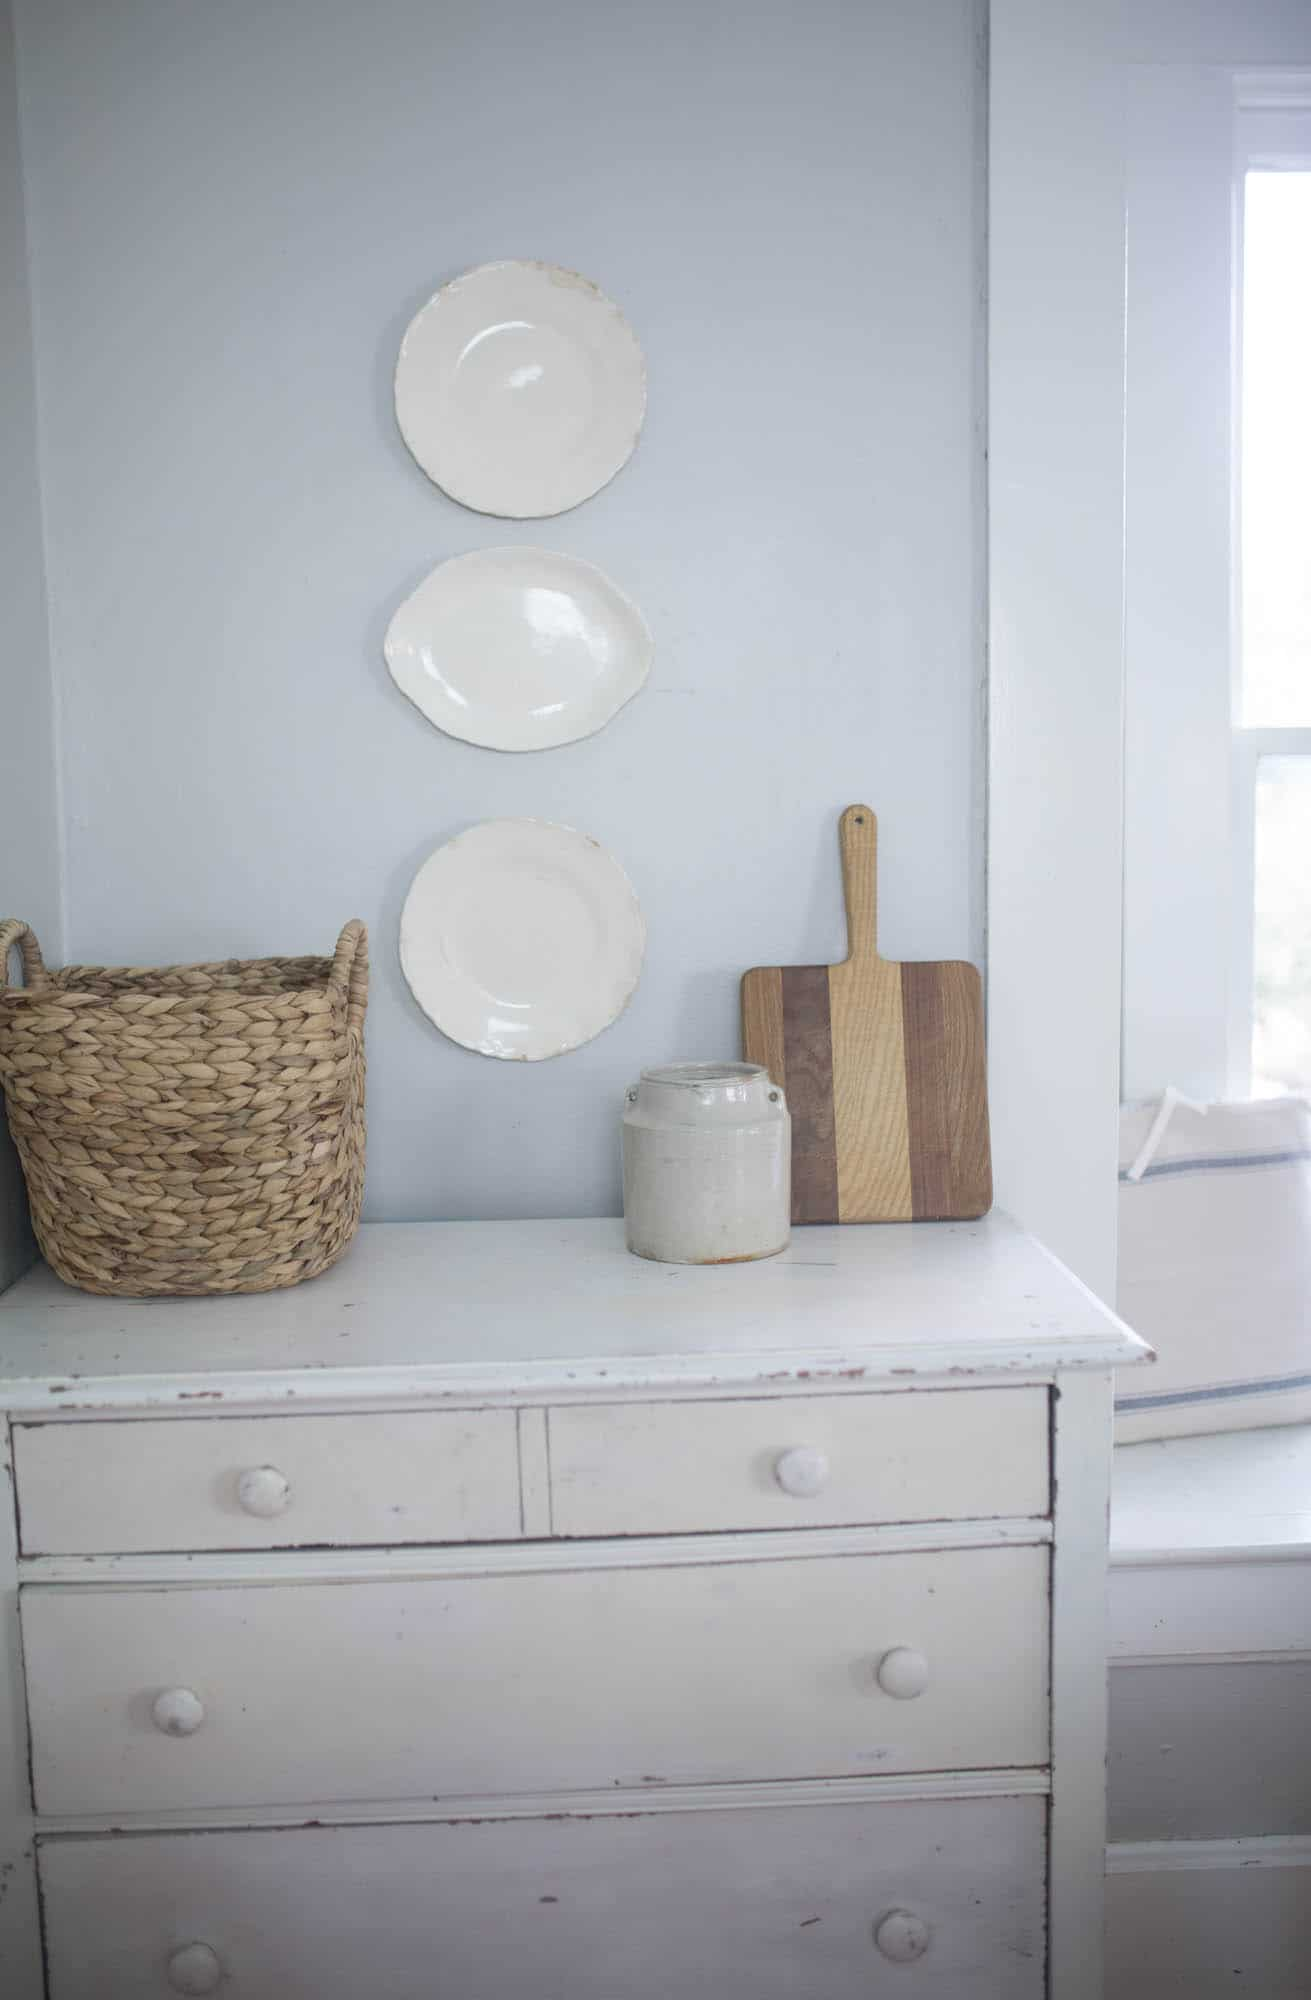 How to Hang Plates on a Wall - Farmhouse on Boone